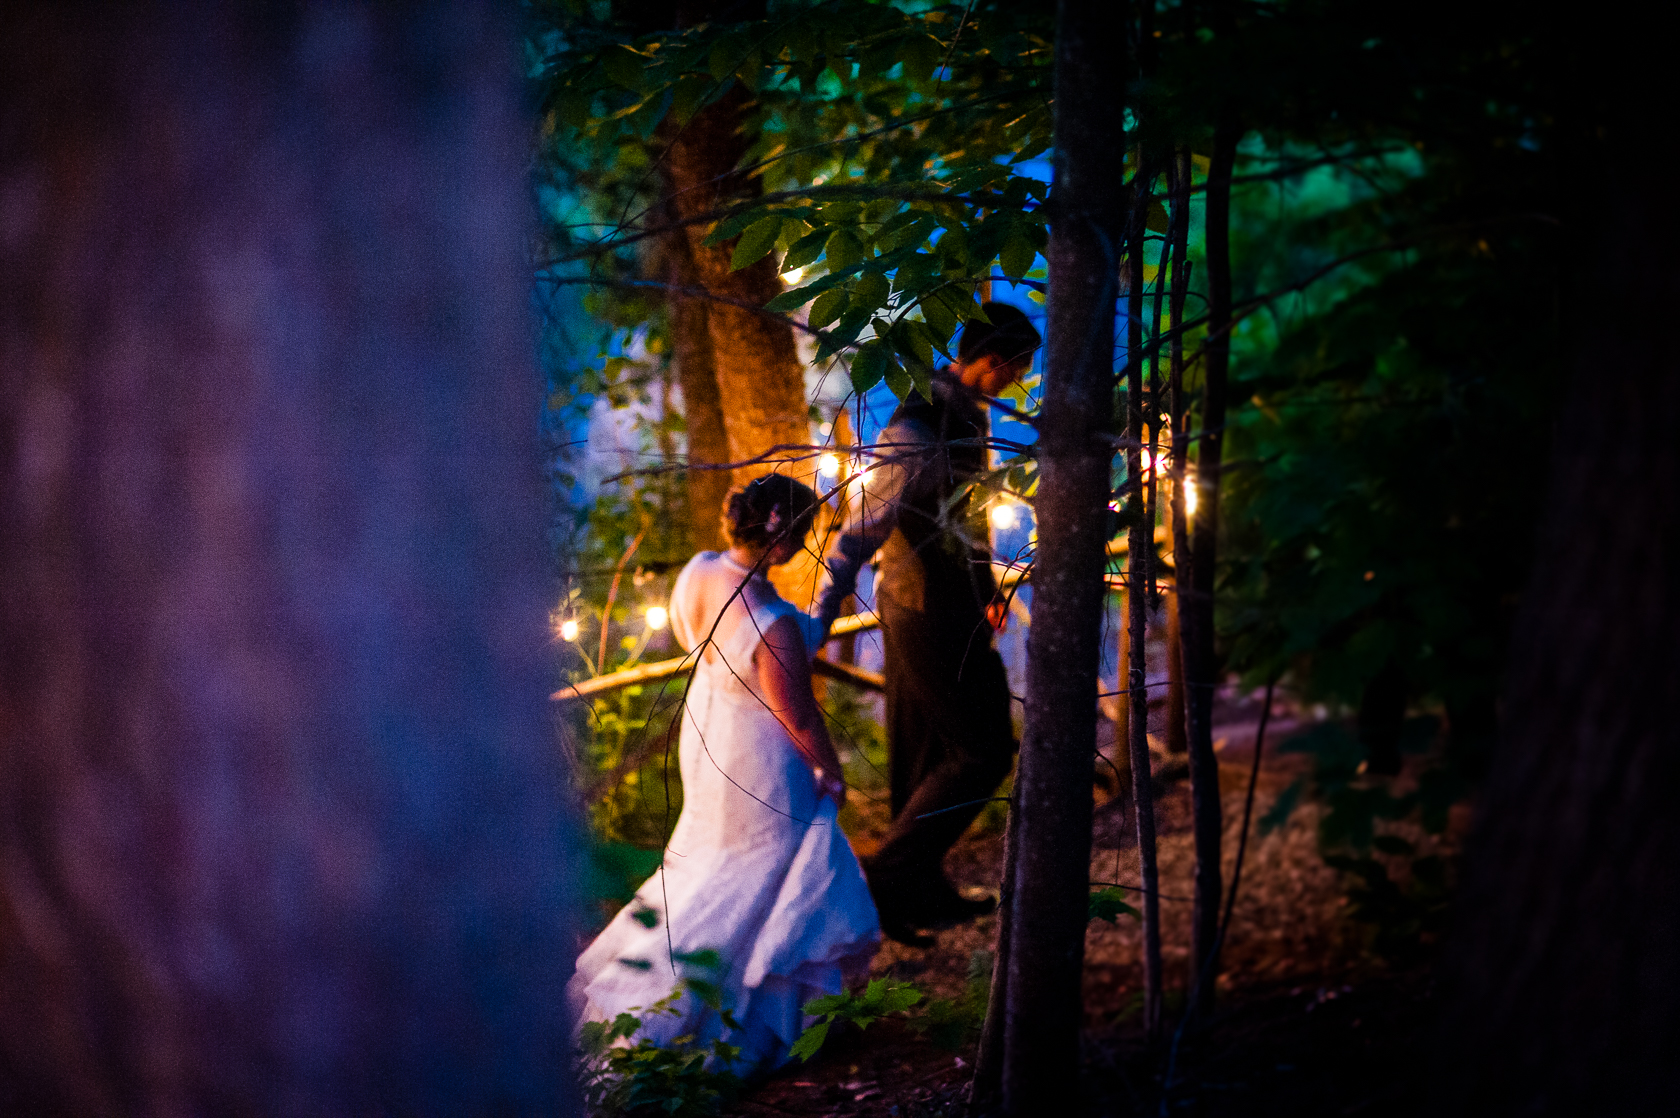 bride and groom walk hand in hand down dimly lit wooded path